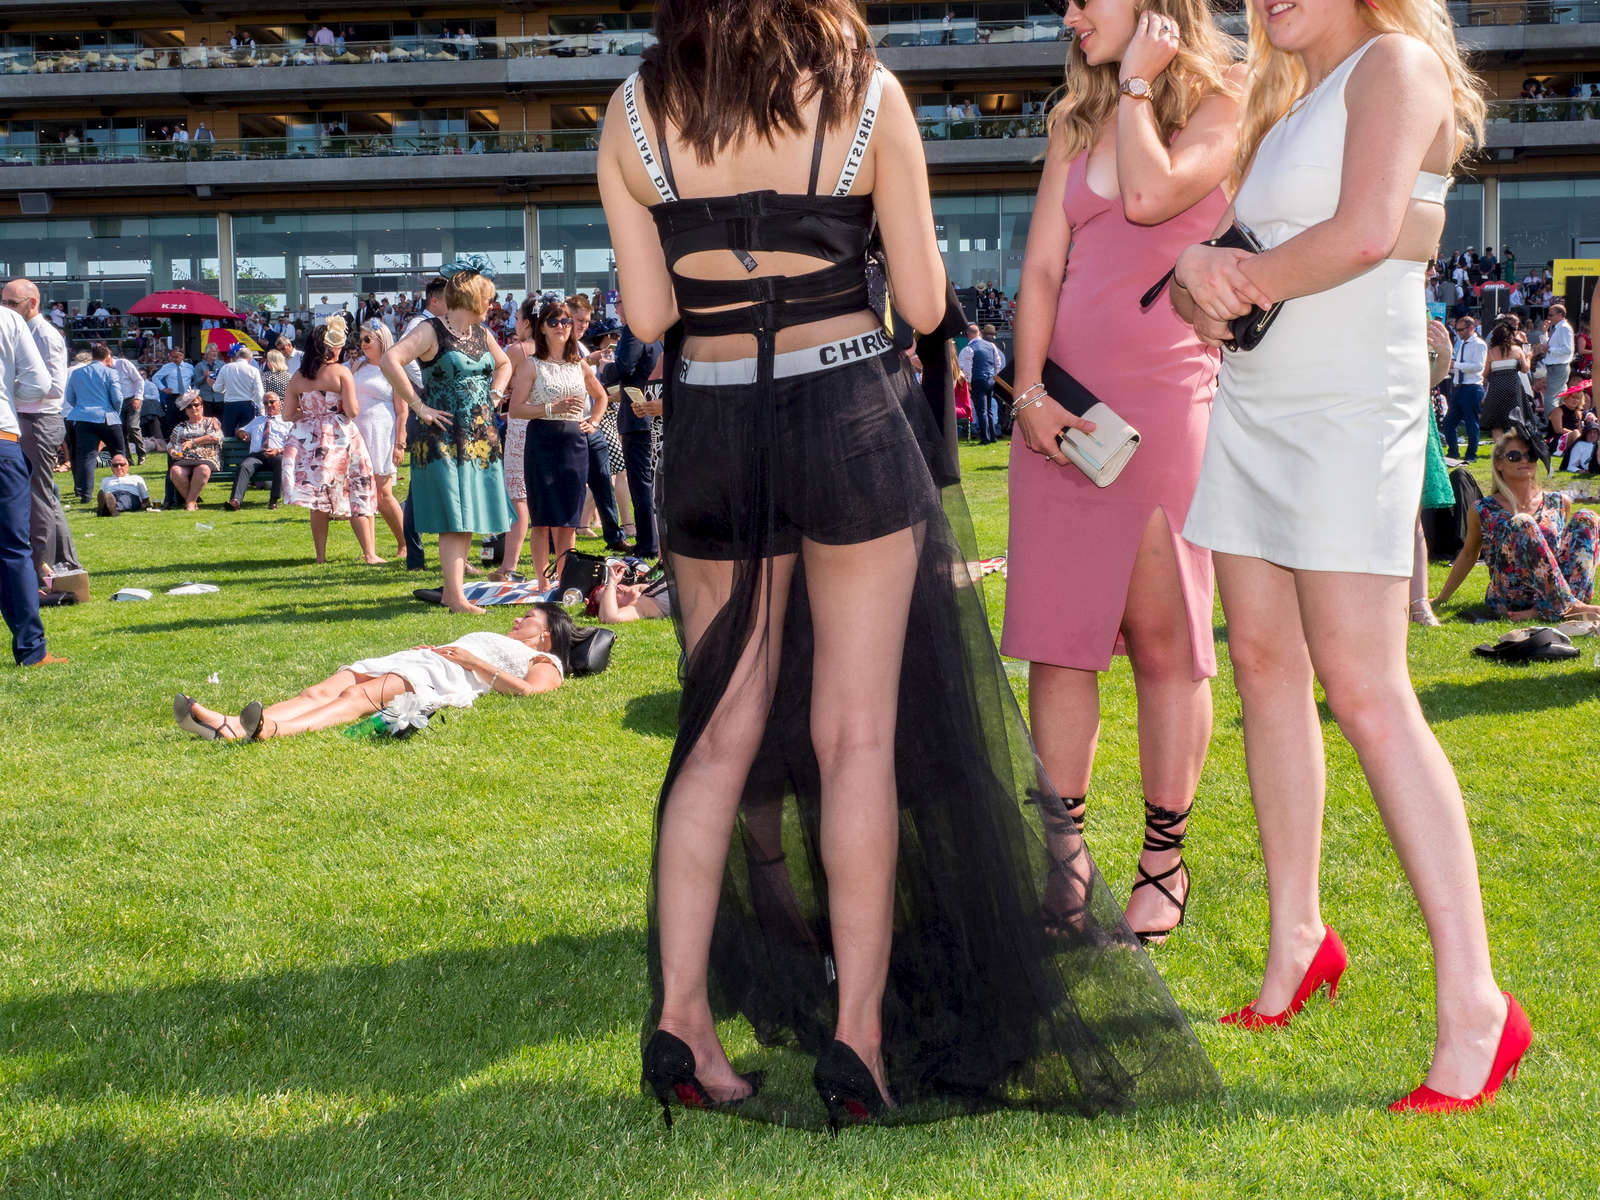 Woman chatter between the horse raing at Royal Ascot.One of Britain's most well-known racecourses, Ascot holds a special week of races in June each year called Royal Ascot, attended by The Queen. The week has become Britain's most popular race meeting, welcoming around 300,000 visitors over five days, all dressed up in their finest clothes and hats.